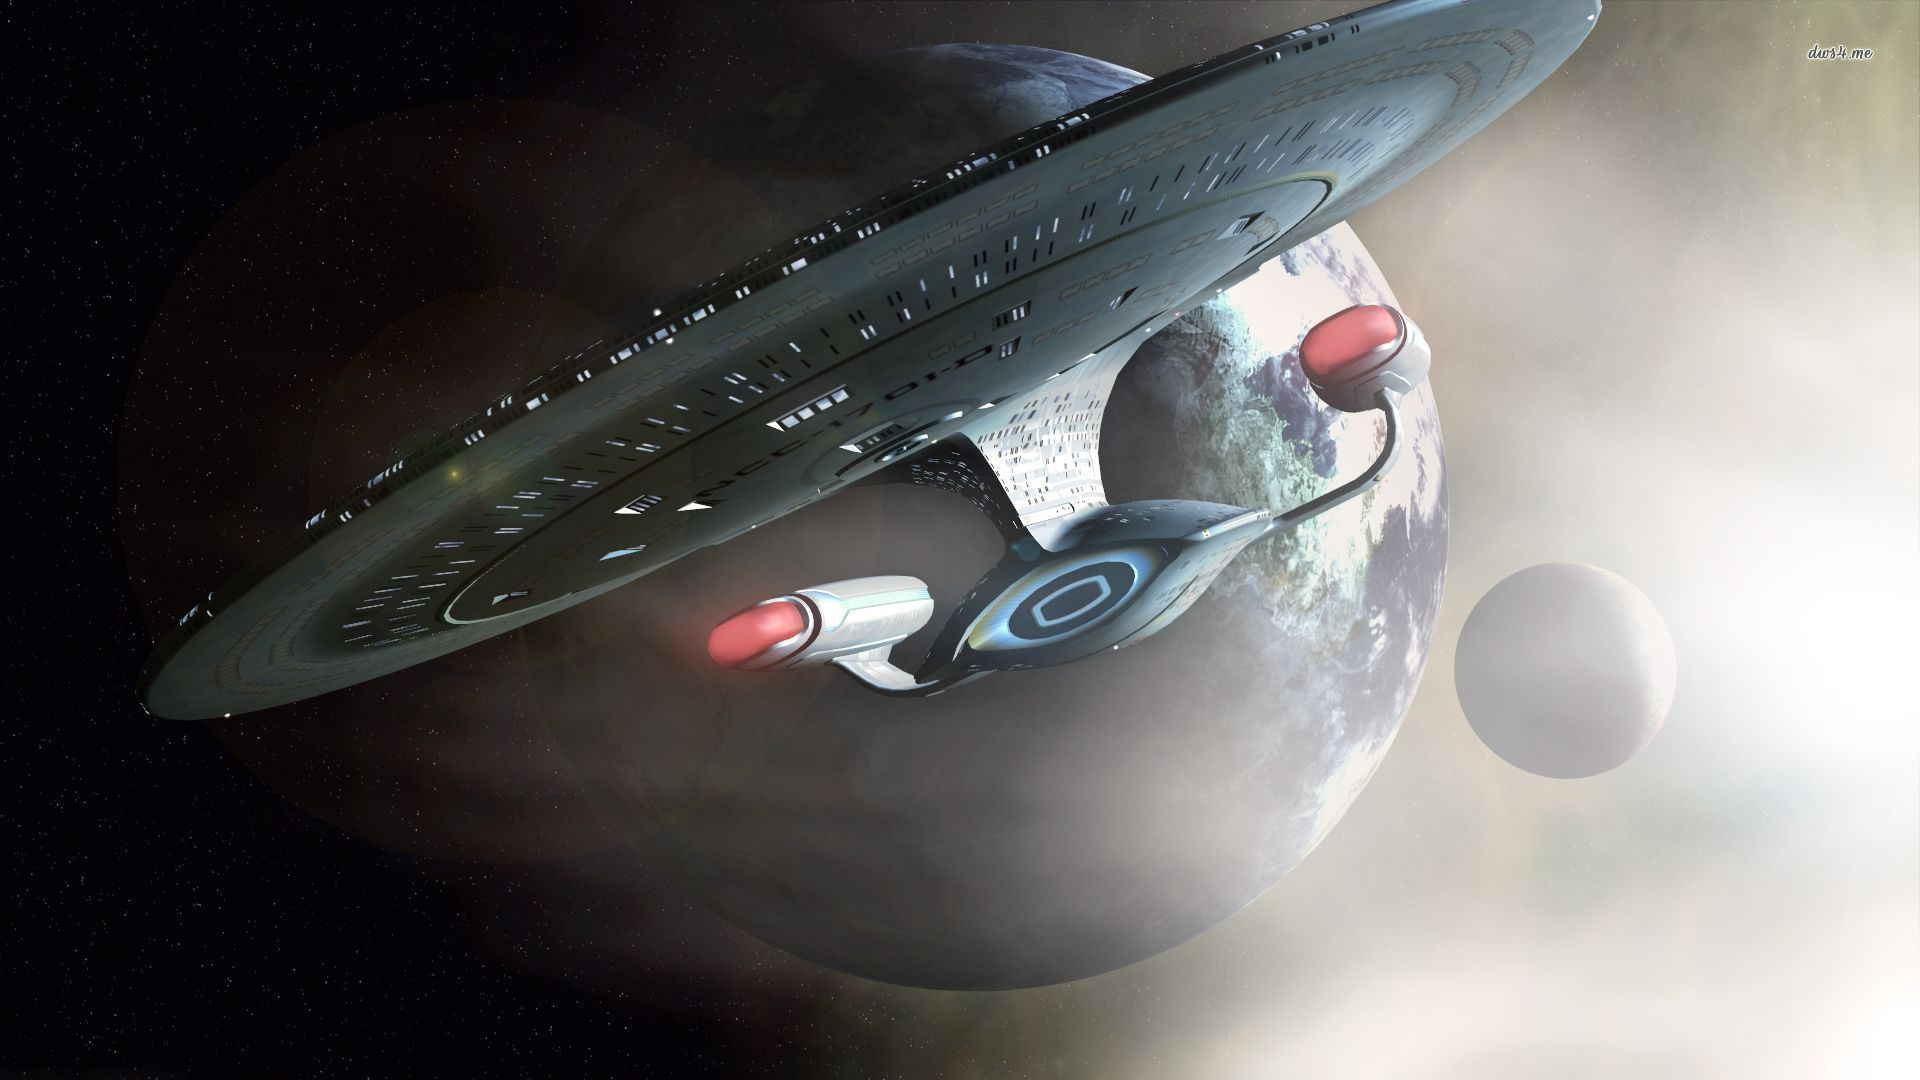 Star Trek Wallpapers, Pictures, Images